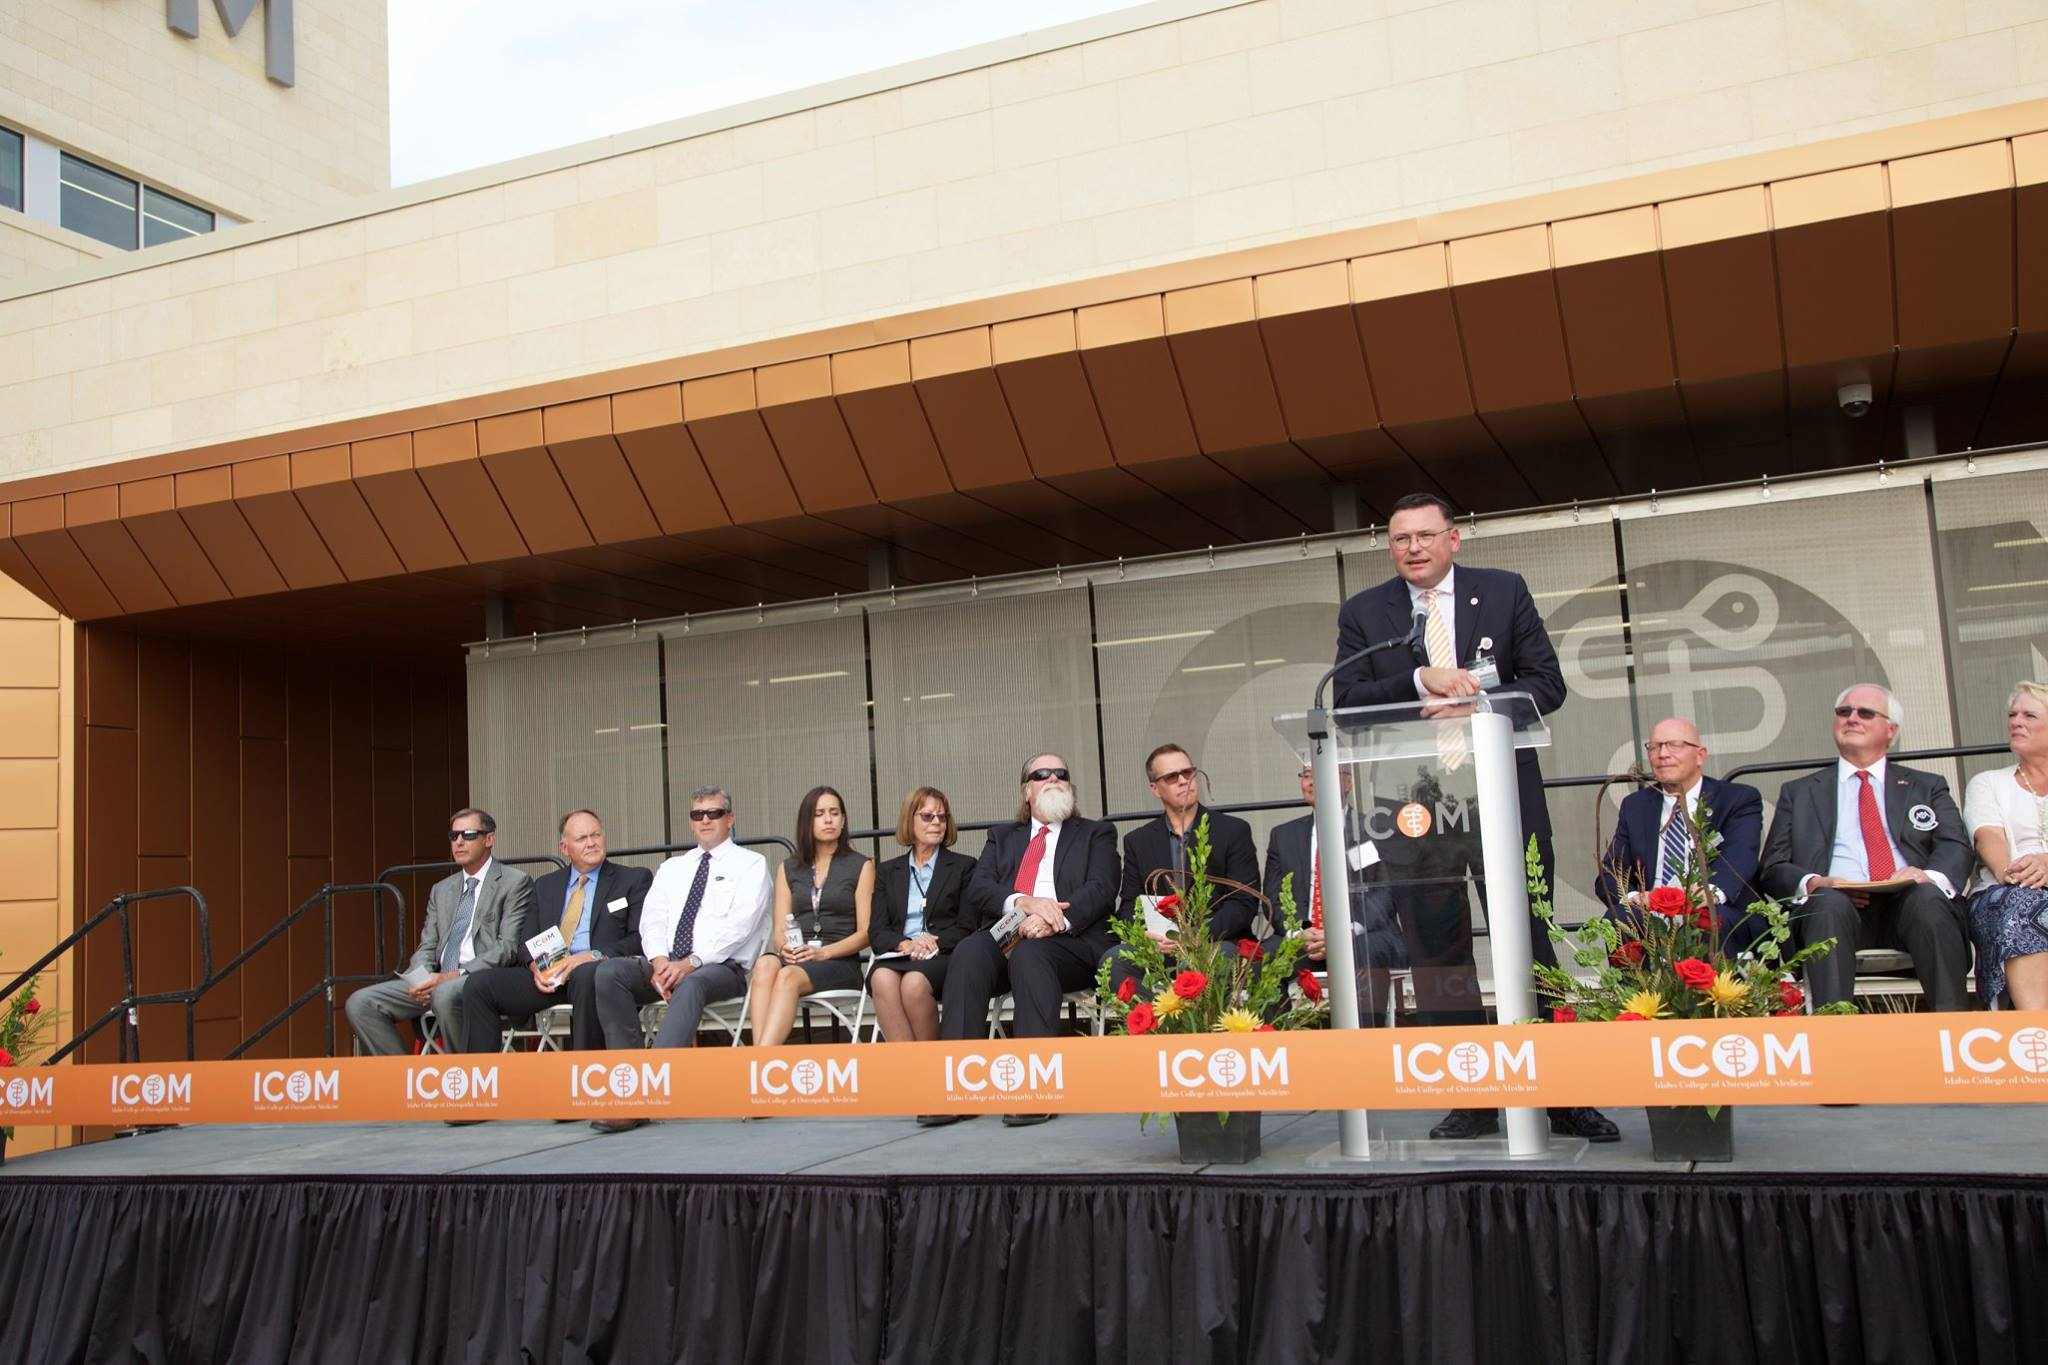 Dr. Hasty addresses the crowd during ICOM's ribbon cutting event on September 5, 2018.